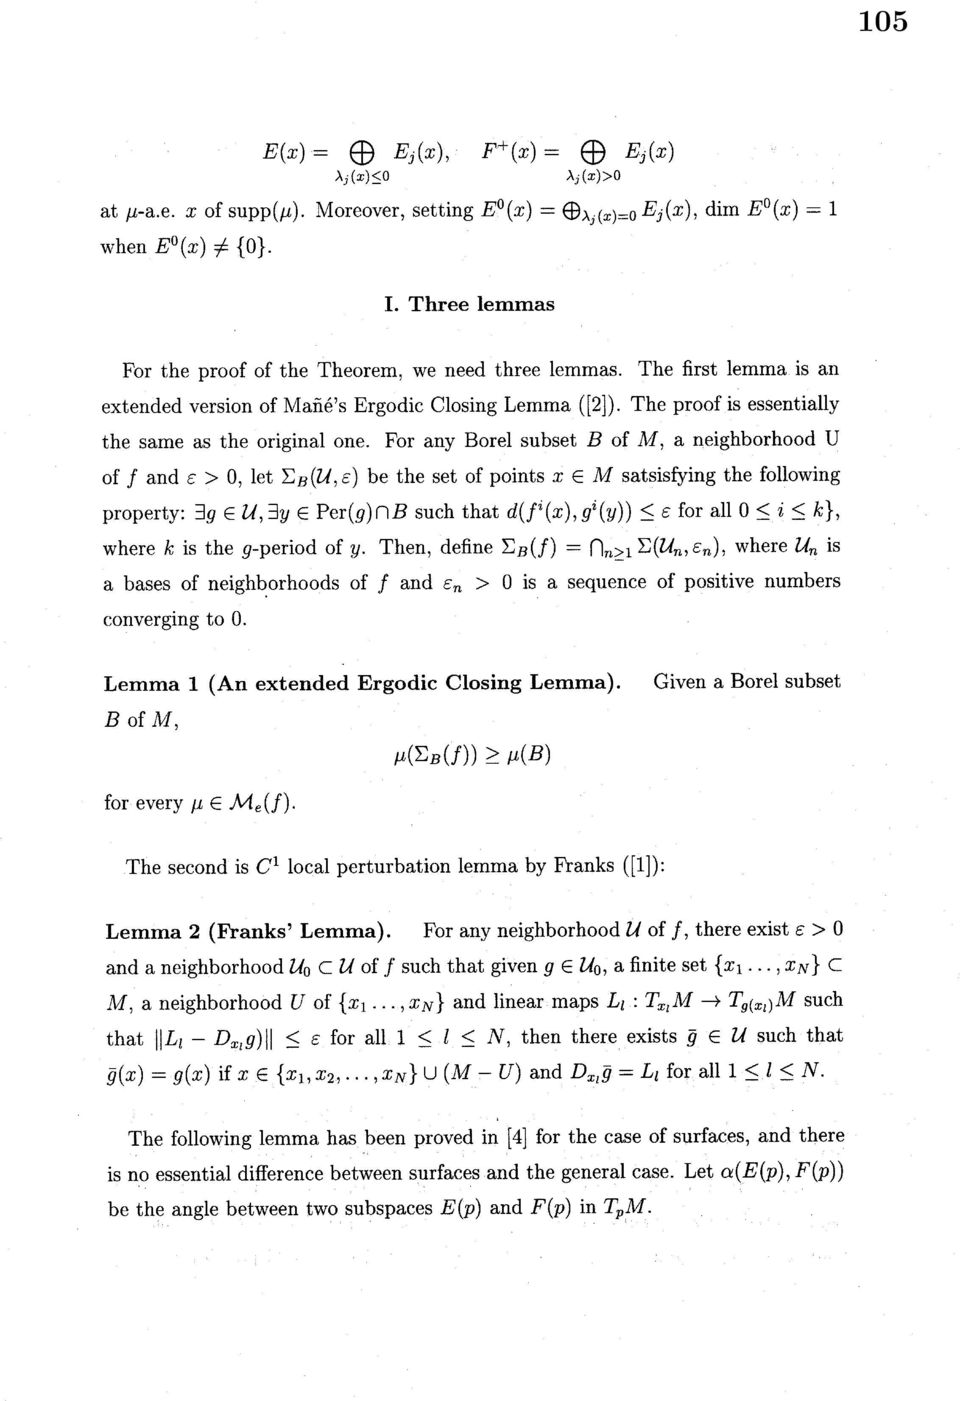 extended version of $\mathrm{m}\mathrm{a}\tilde{\mathrm{n}}\acute{\mathrm{e}} Ergodic Closing Lemma ([2]) The proof is essentially the same as the original one For any Borel subset $B$ of $M$, a